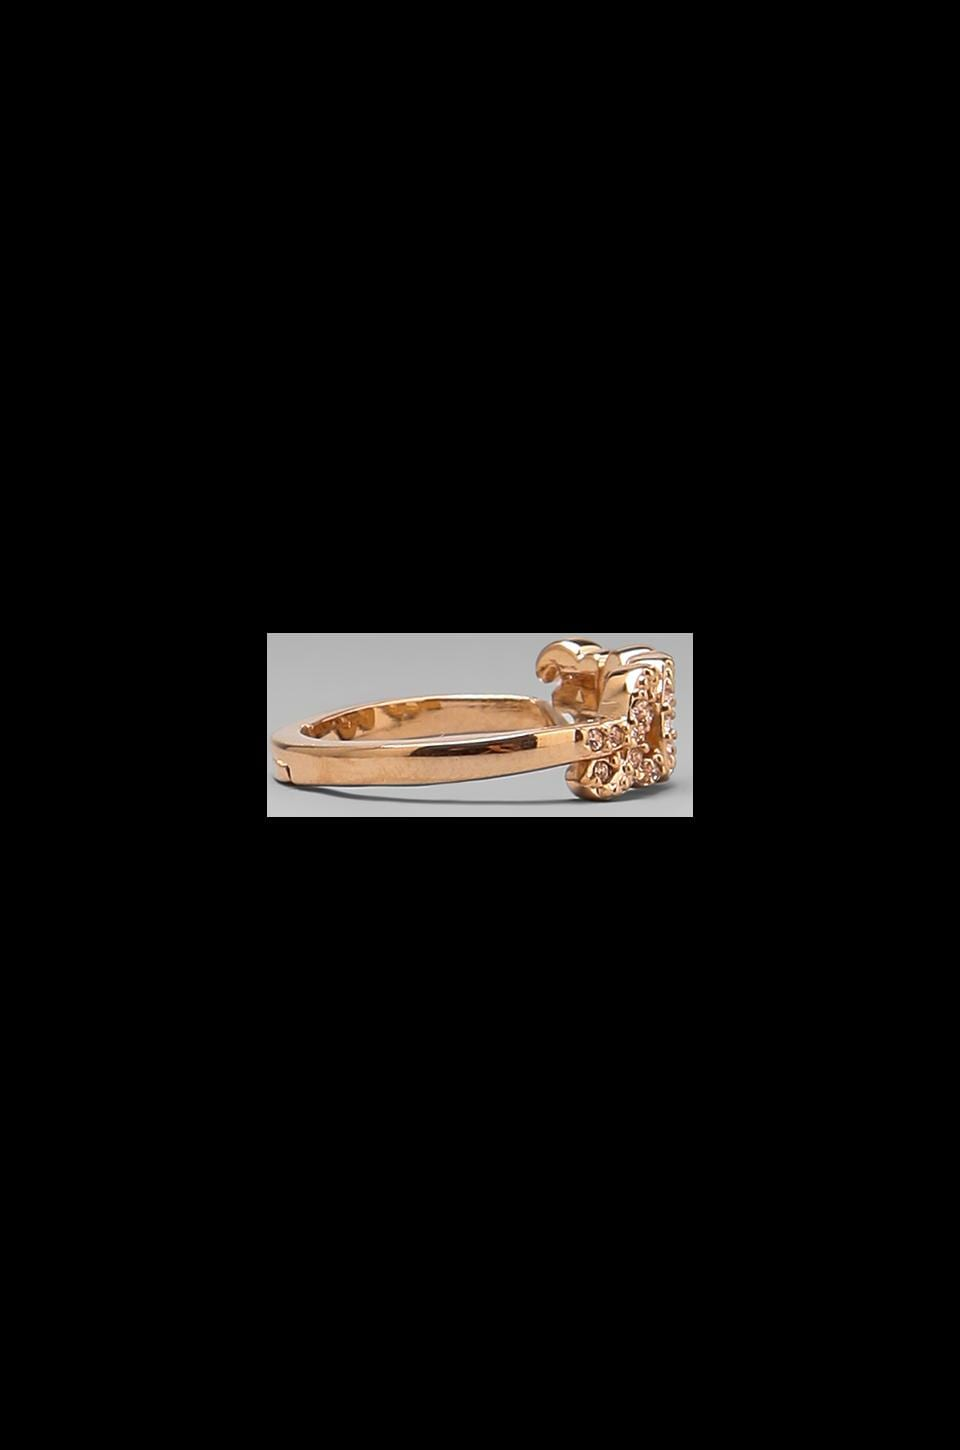 Juicy Couture Pave Love Ring in Pink Gold